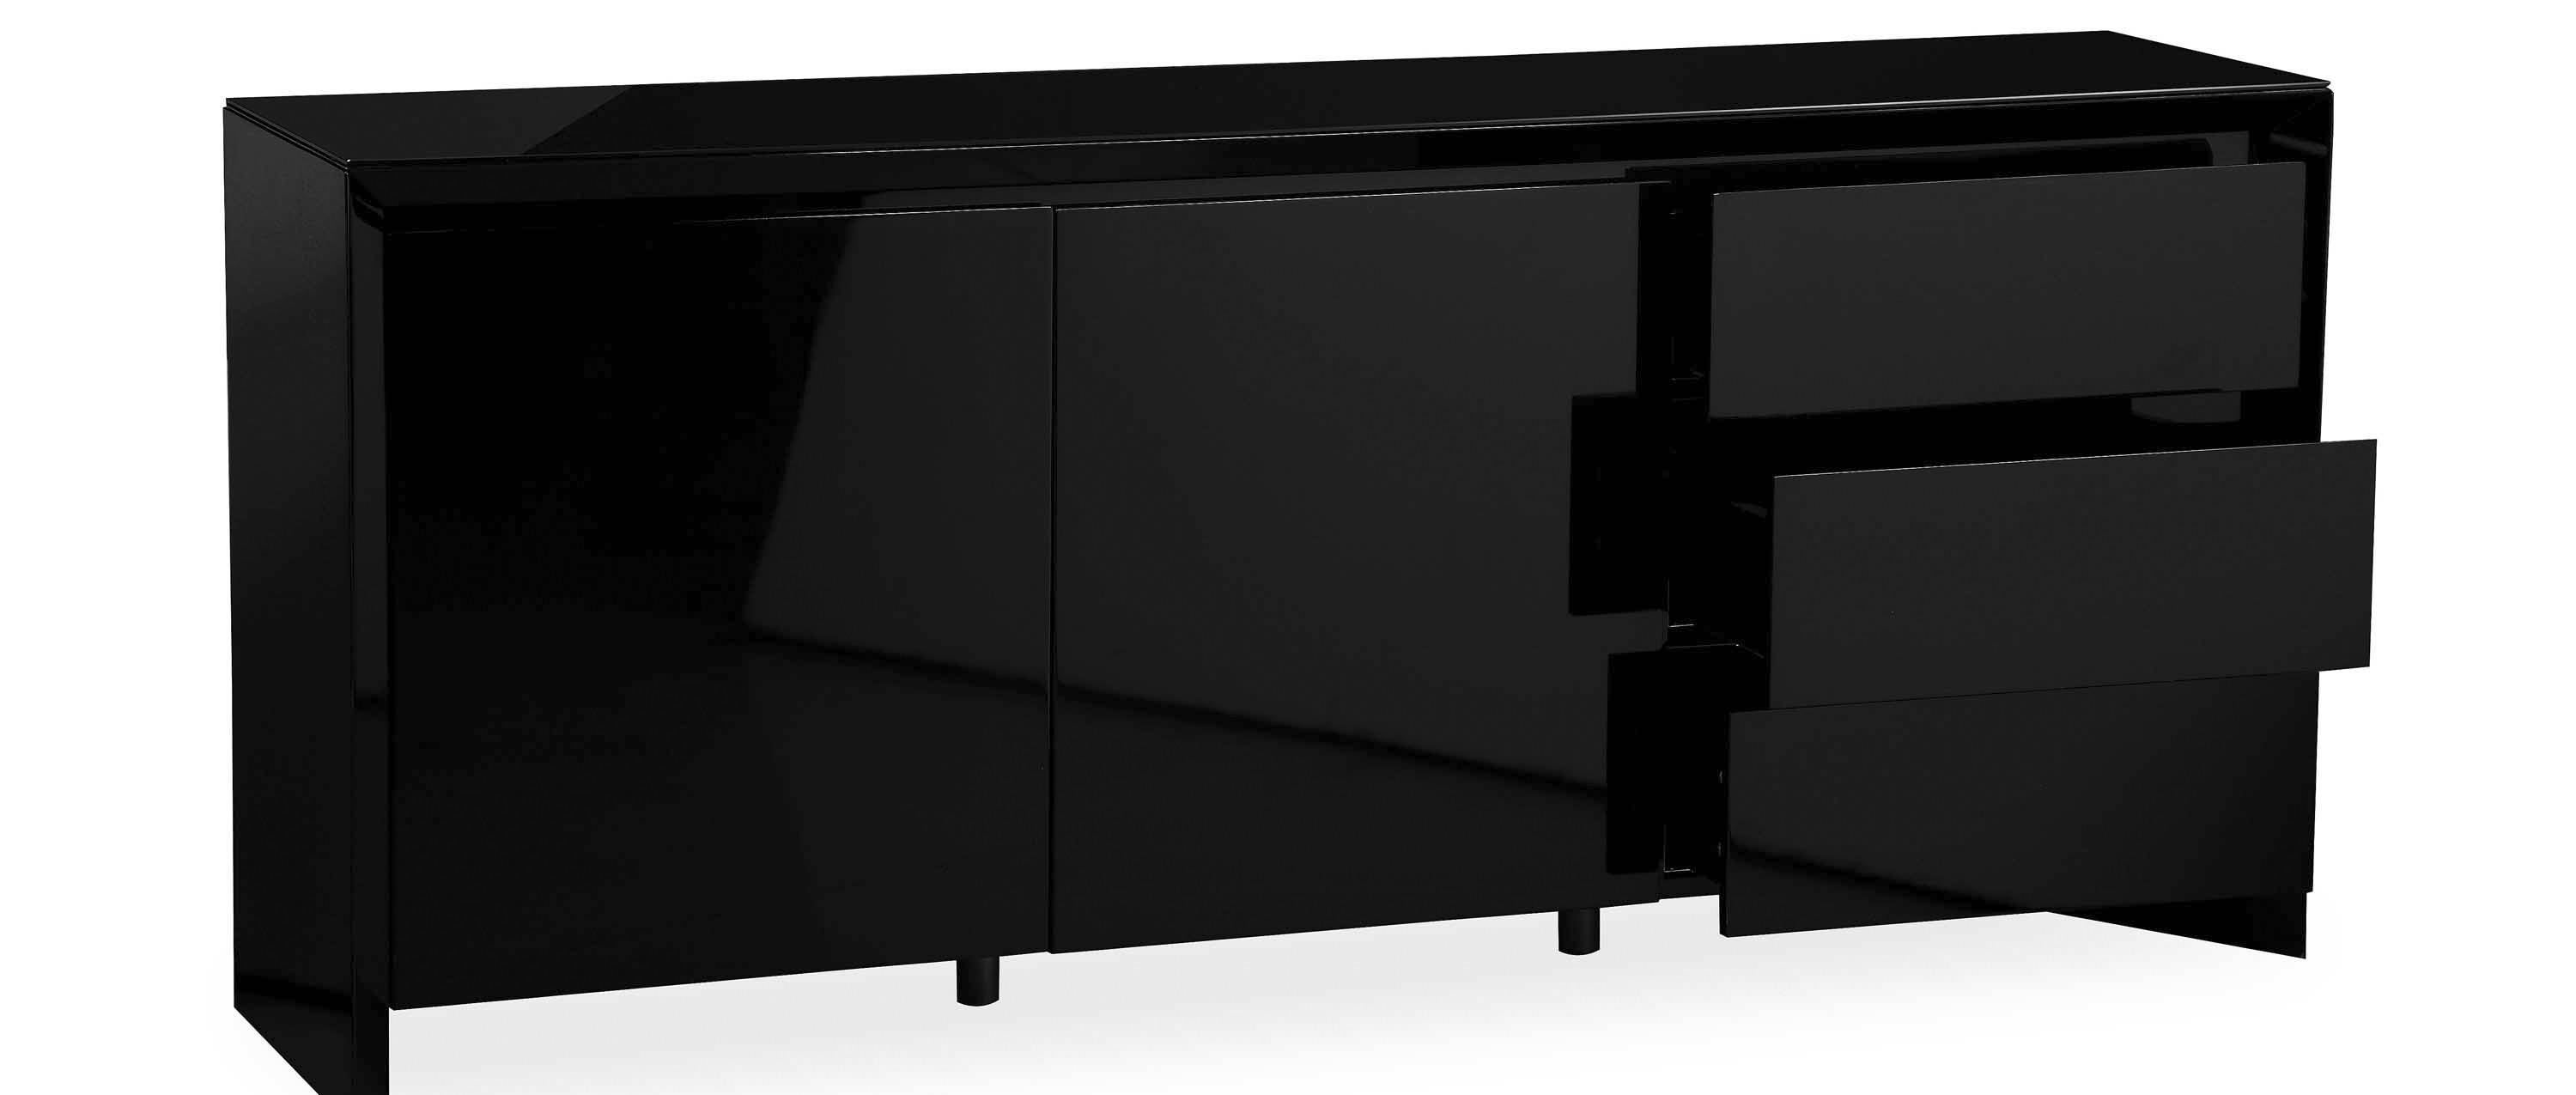 Soho - Extra Large Sideboard - Black High Gloss with Fully Assembled Sideboards (Image 25 of 30)